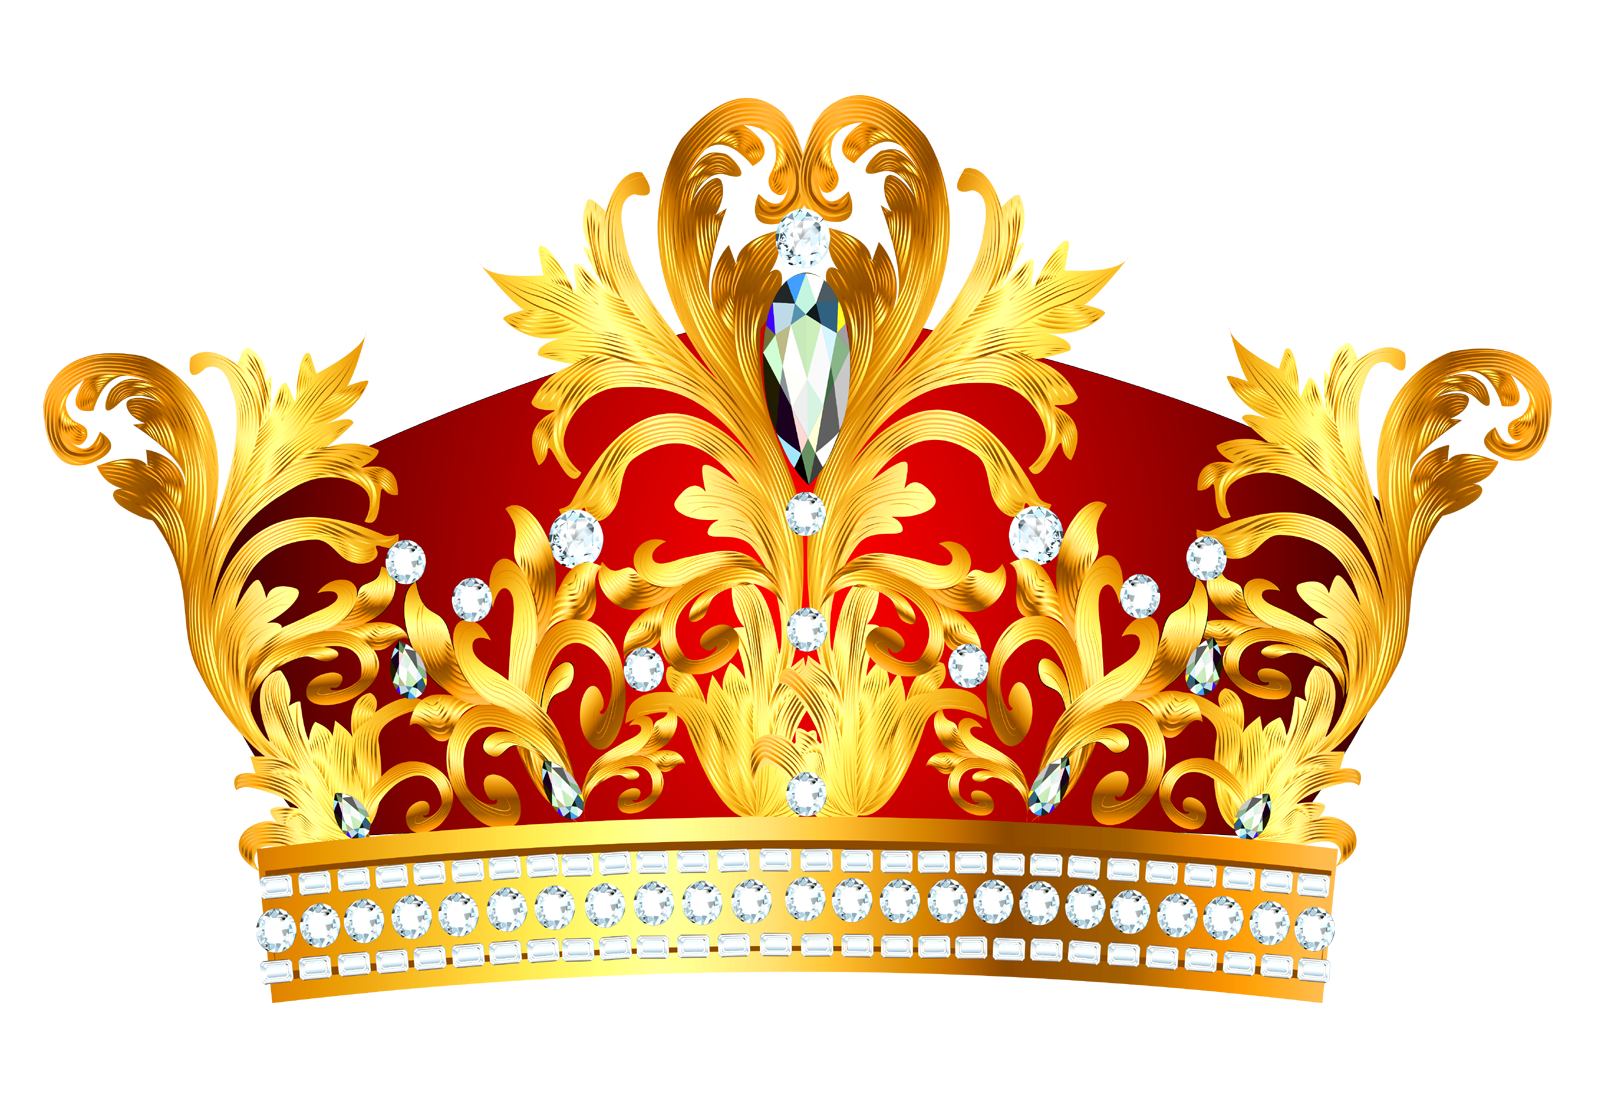 Countess royalty free download. Queen crown png clip art royalty free library